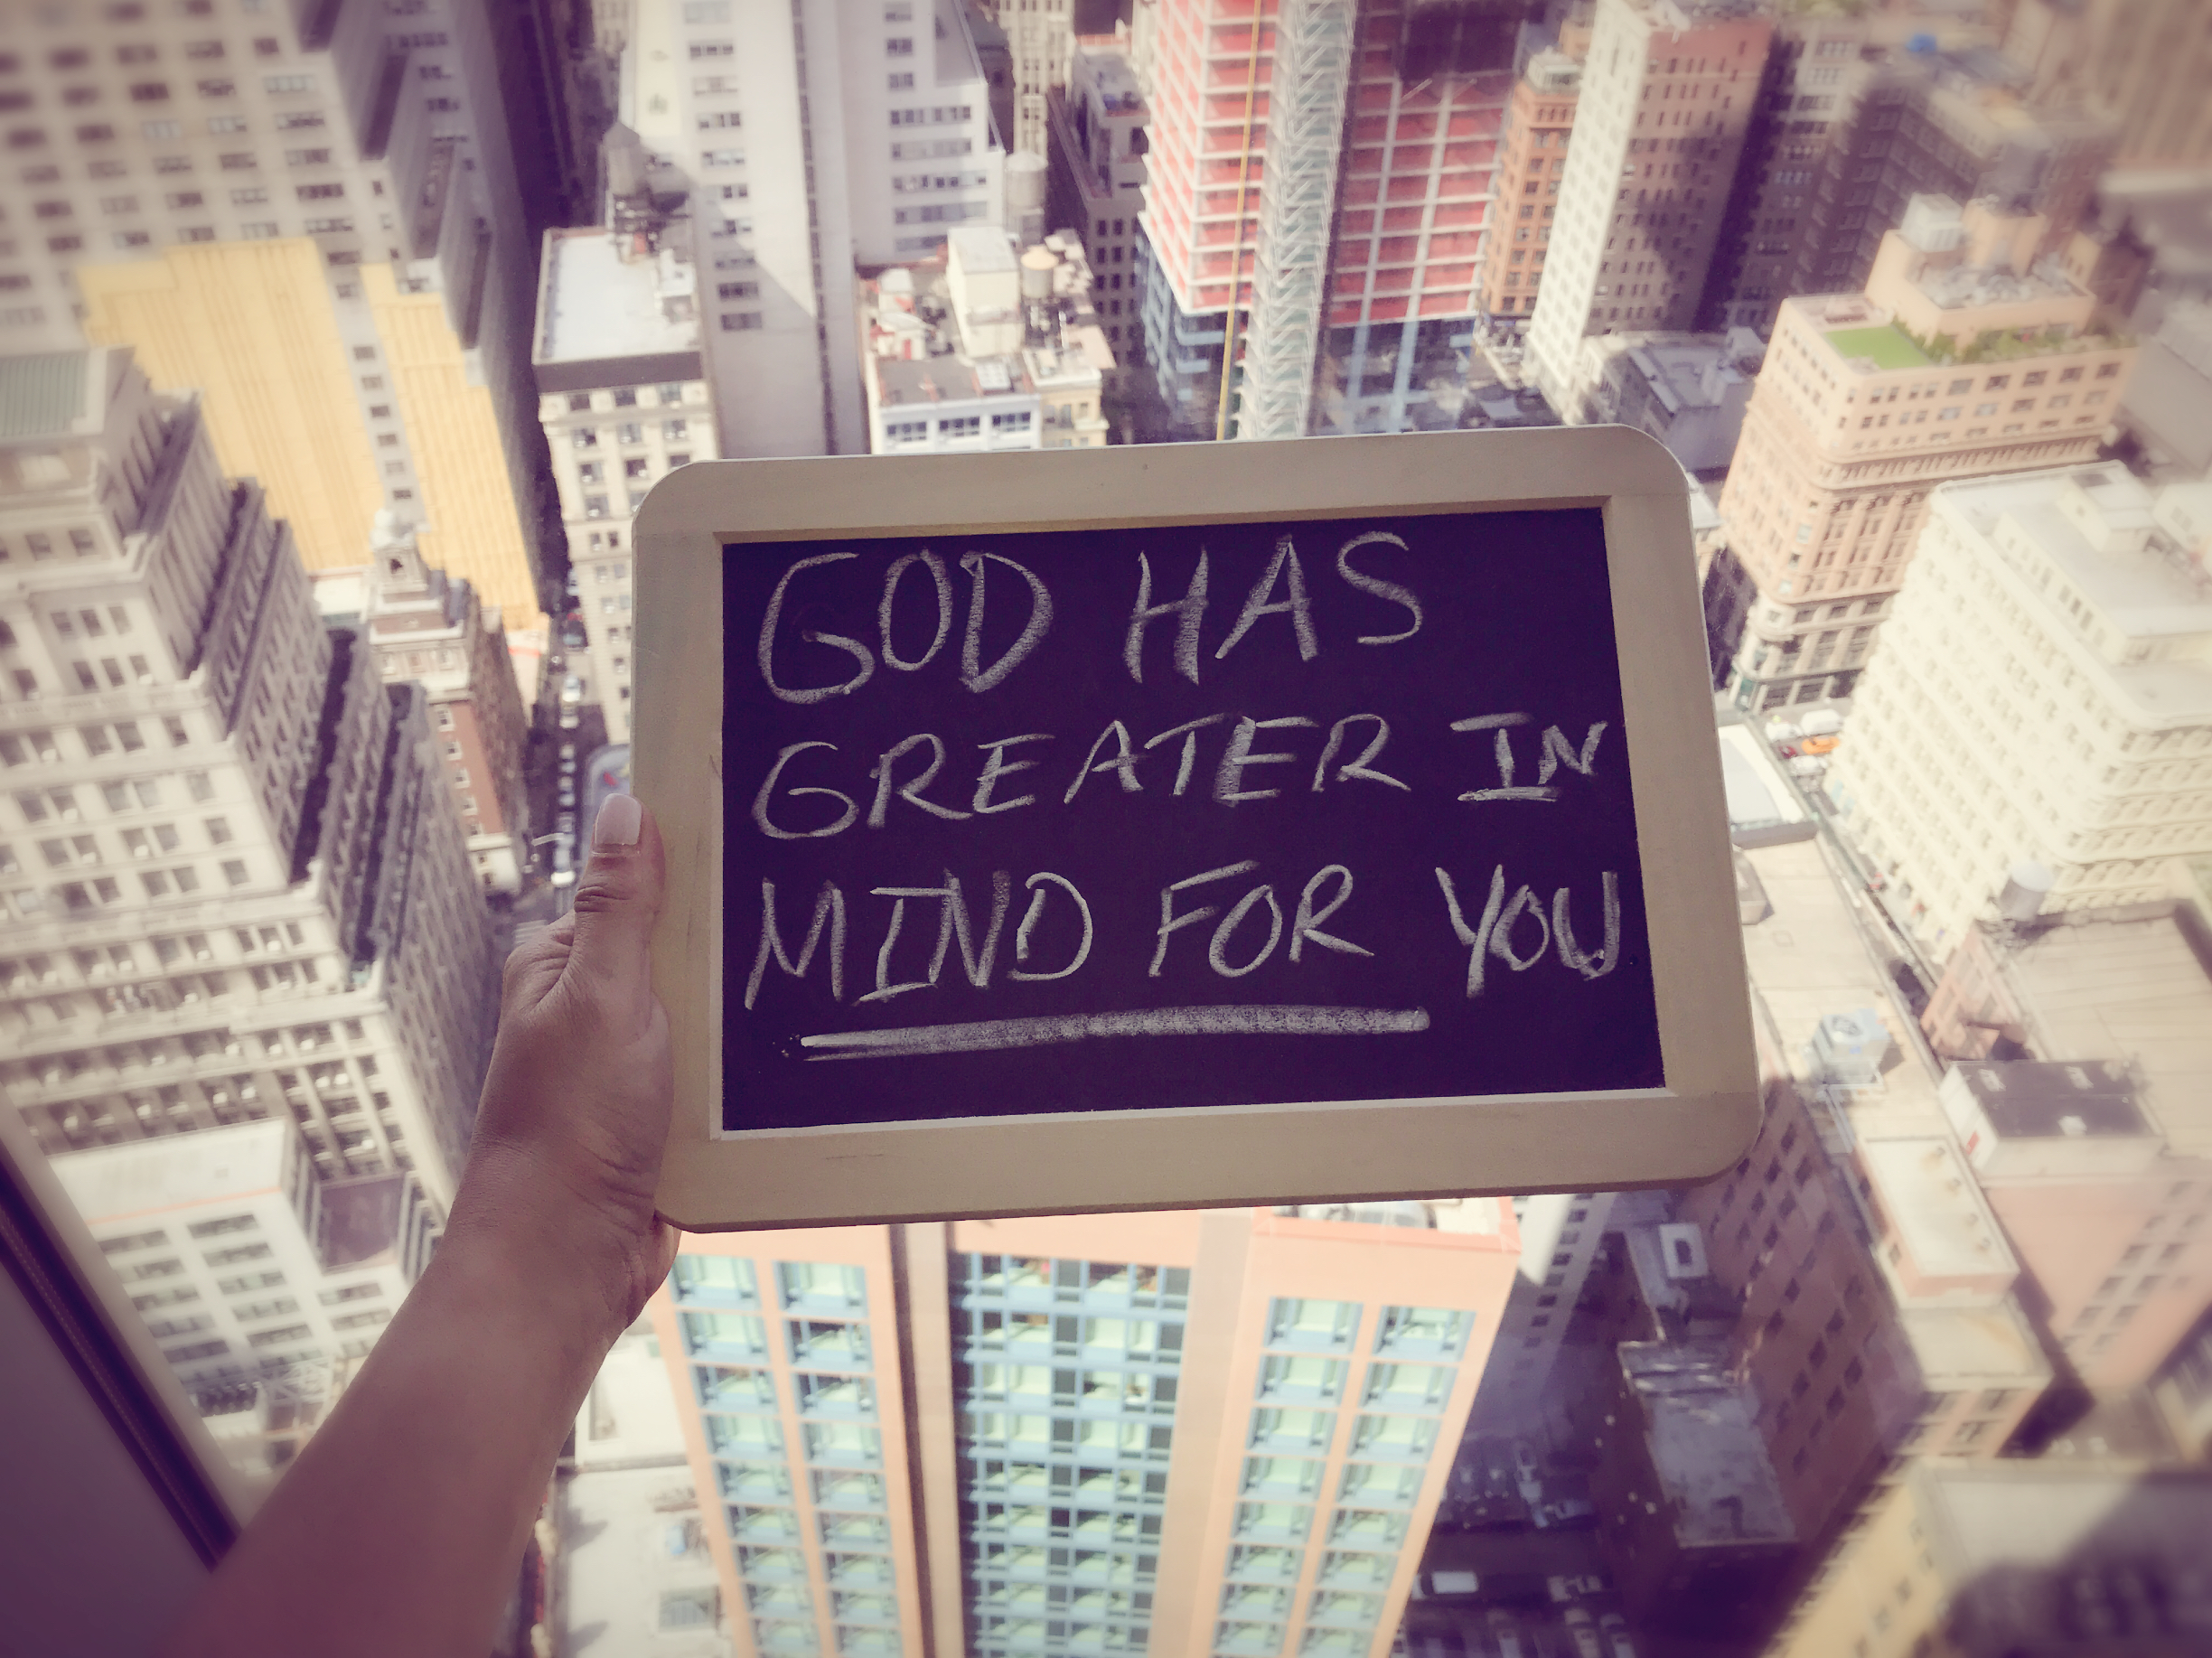 greater in mind